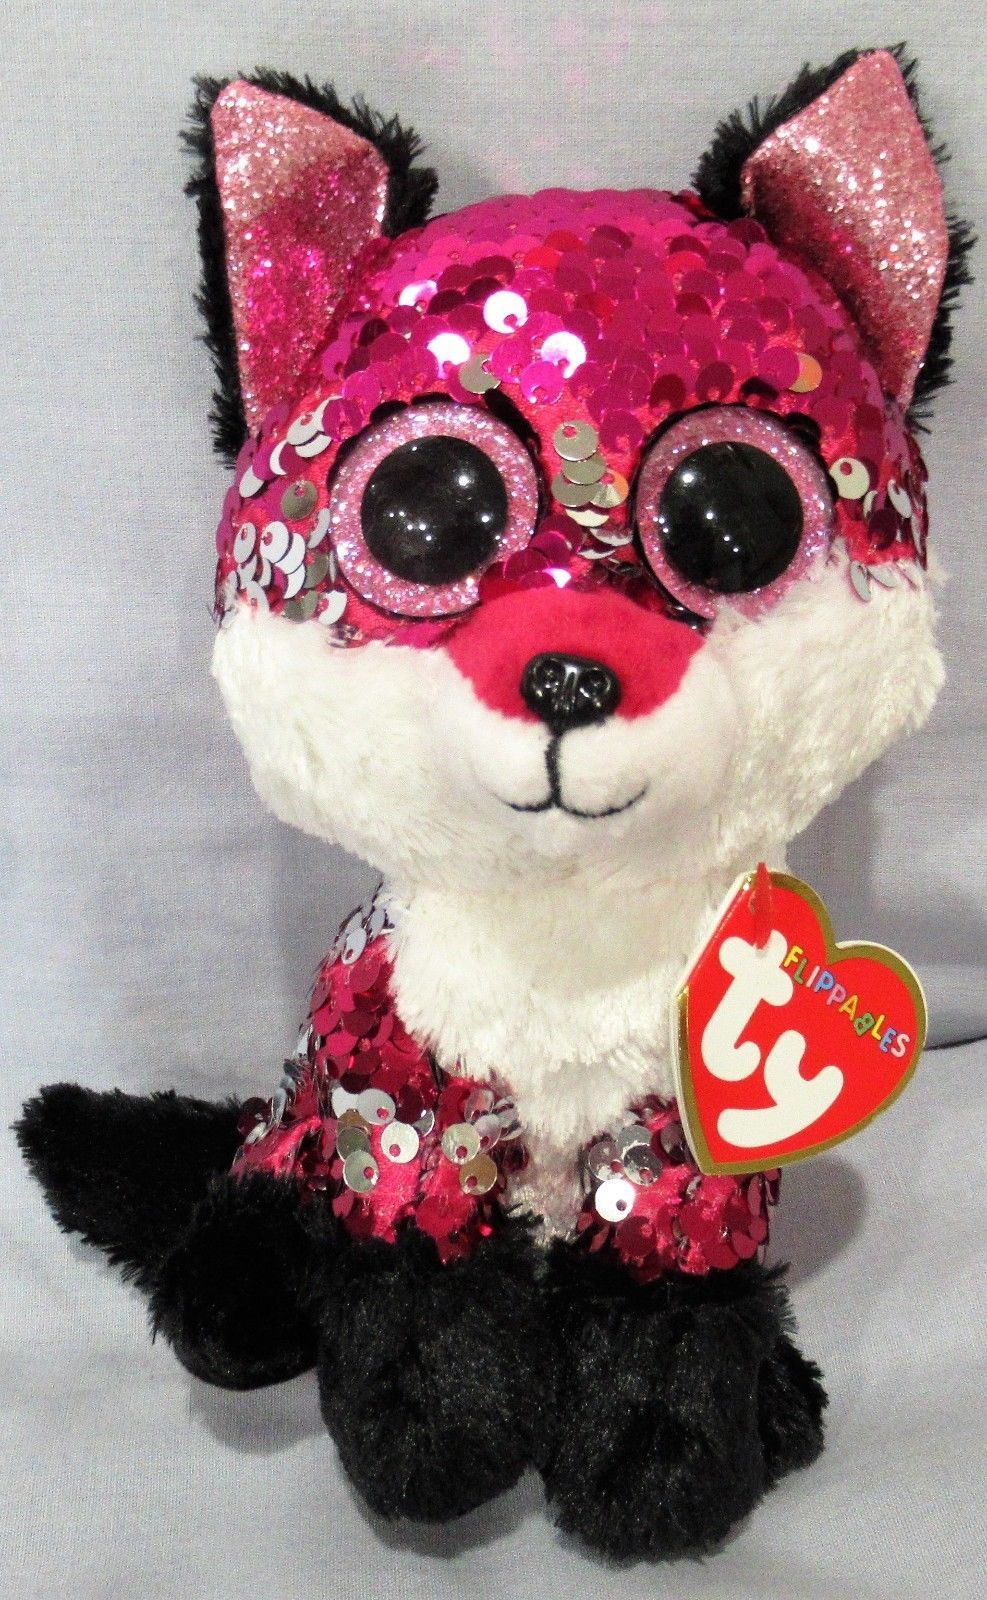 Ty 19203  Jewel - Fox - Ty Flippables Sequin Beanie 6 Boos - New With Mint  Tags -  BUY IT NOW ONLY   16.5 on  eBay  jewel  flippables  sequin  beanie 2a9fa5623e2d